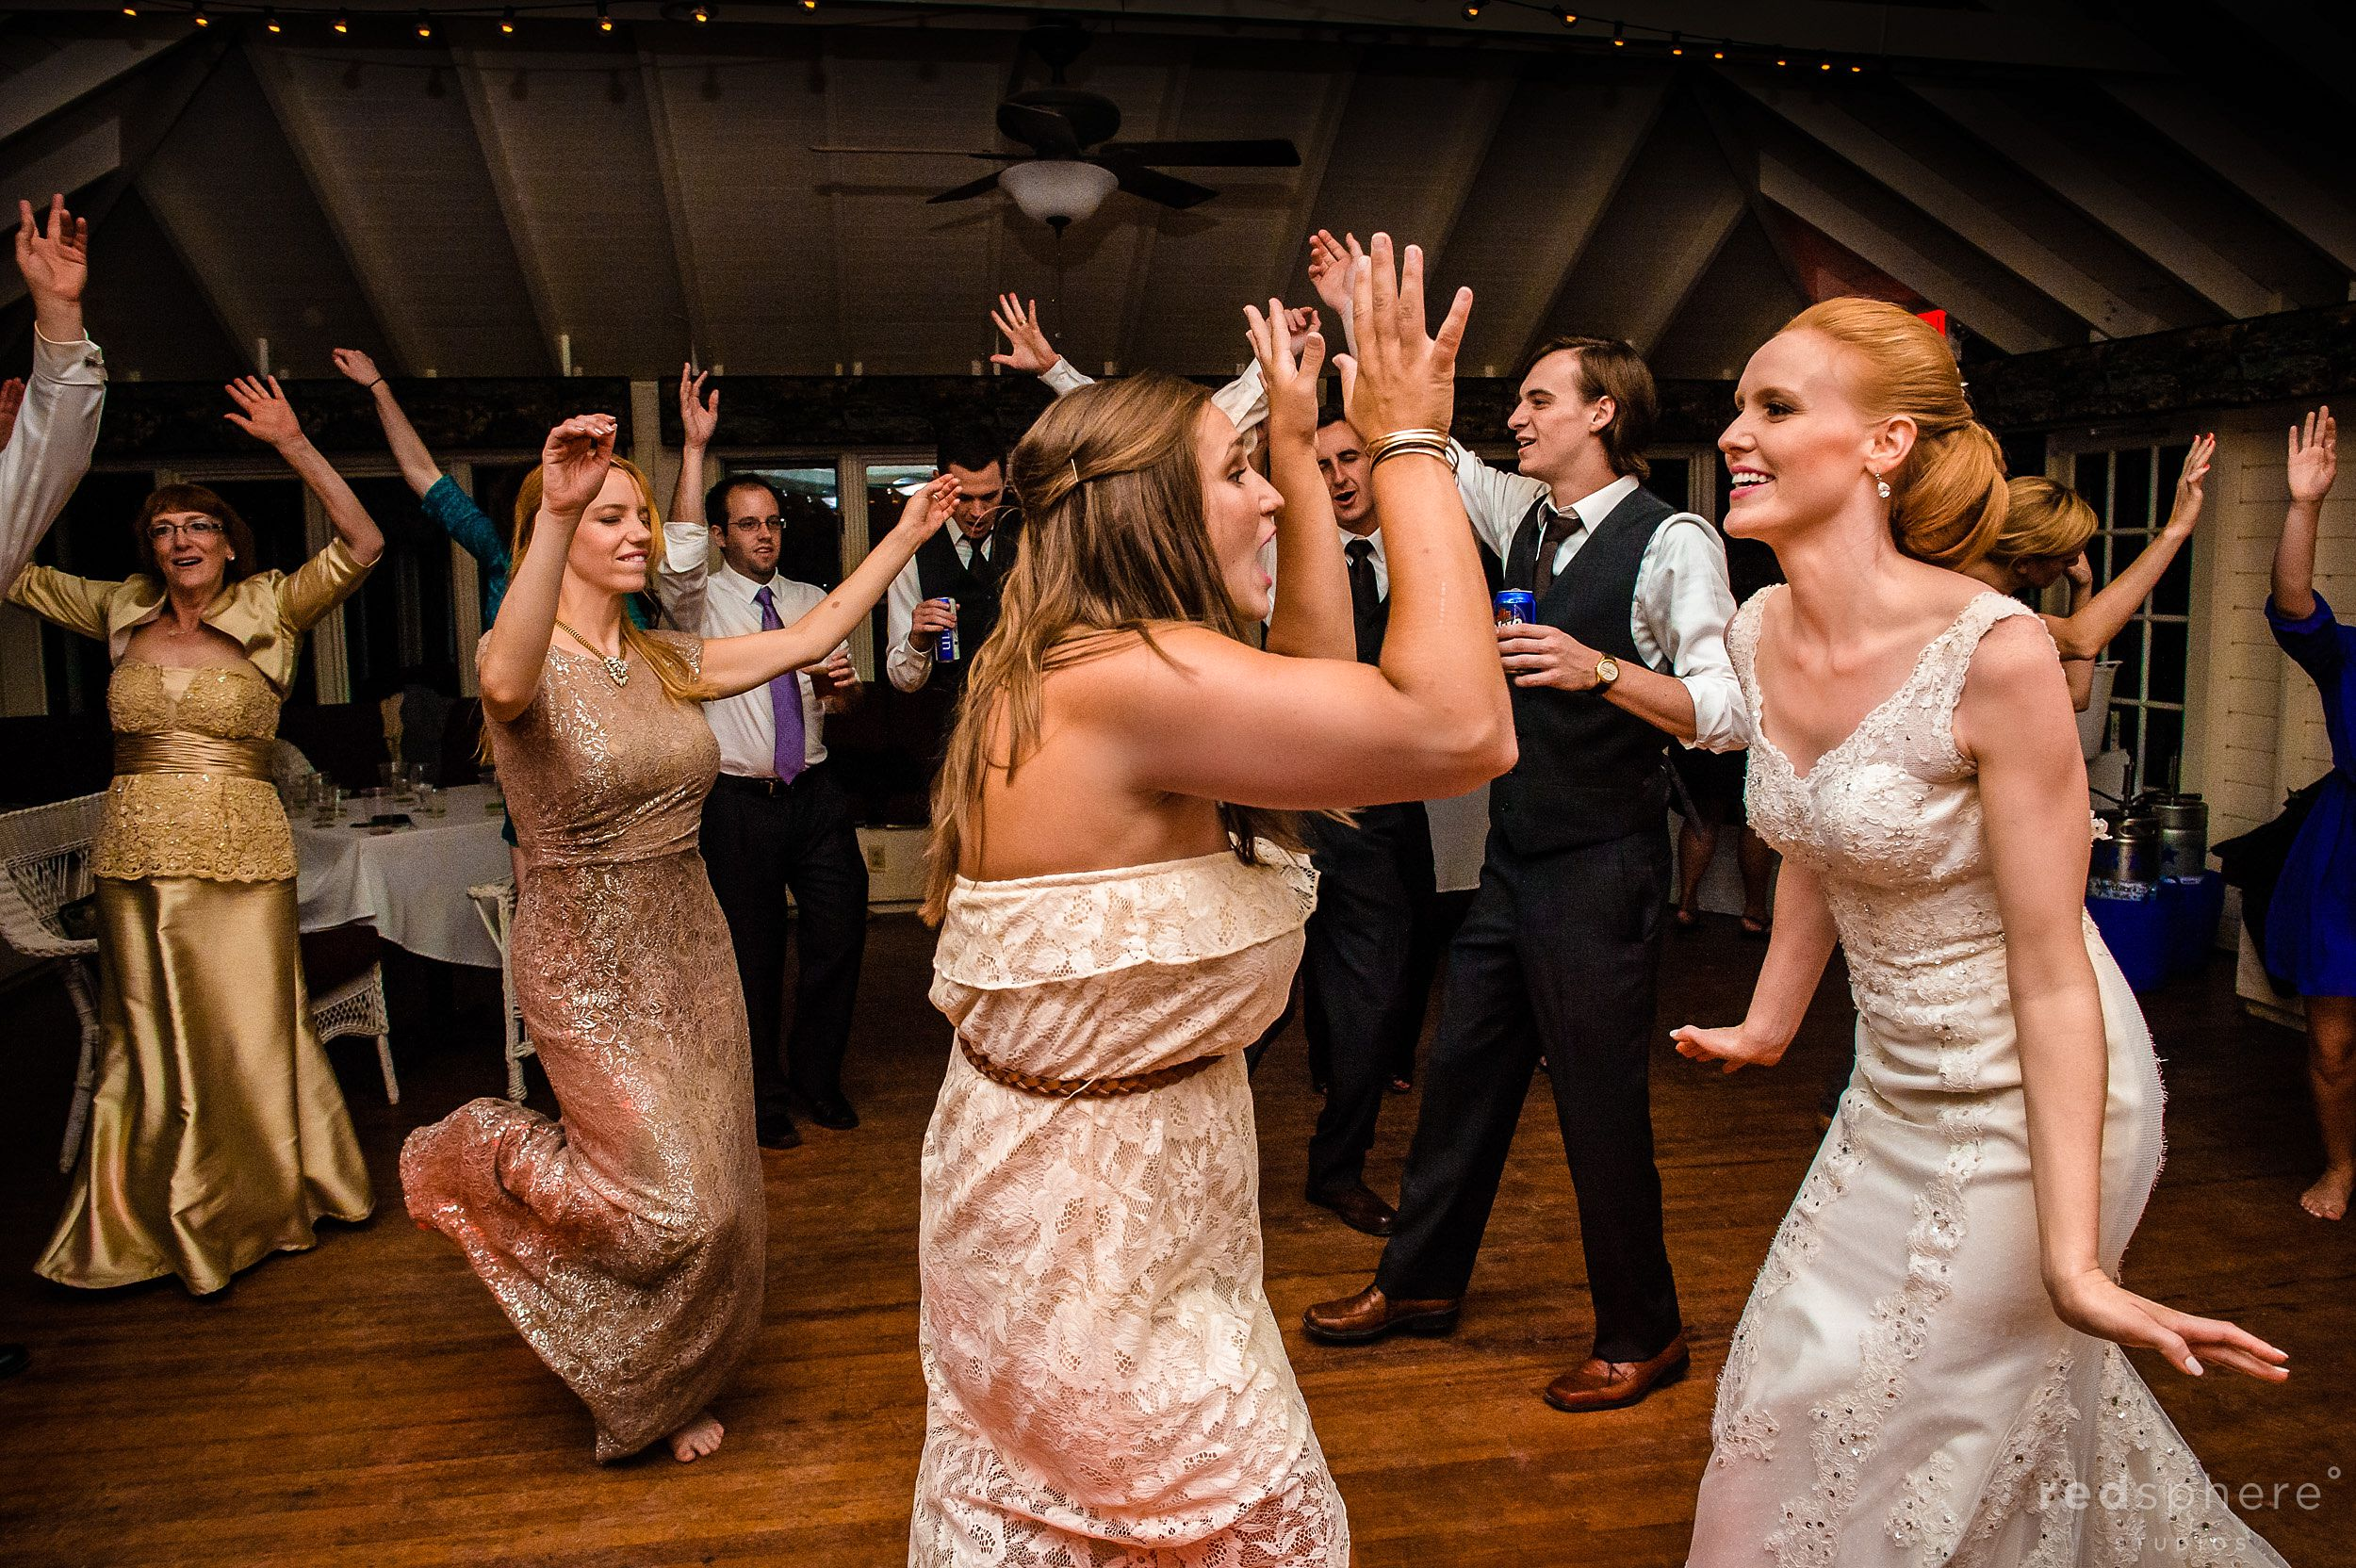 Bride Along With Guests hit the Dance Floor at Wedding After Party